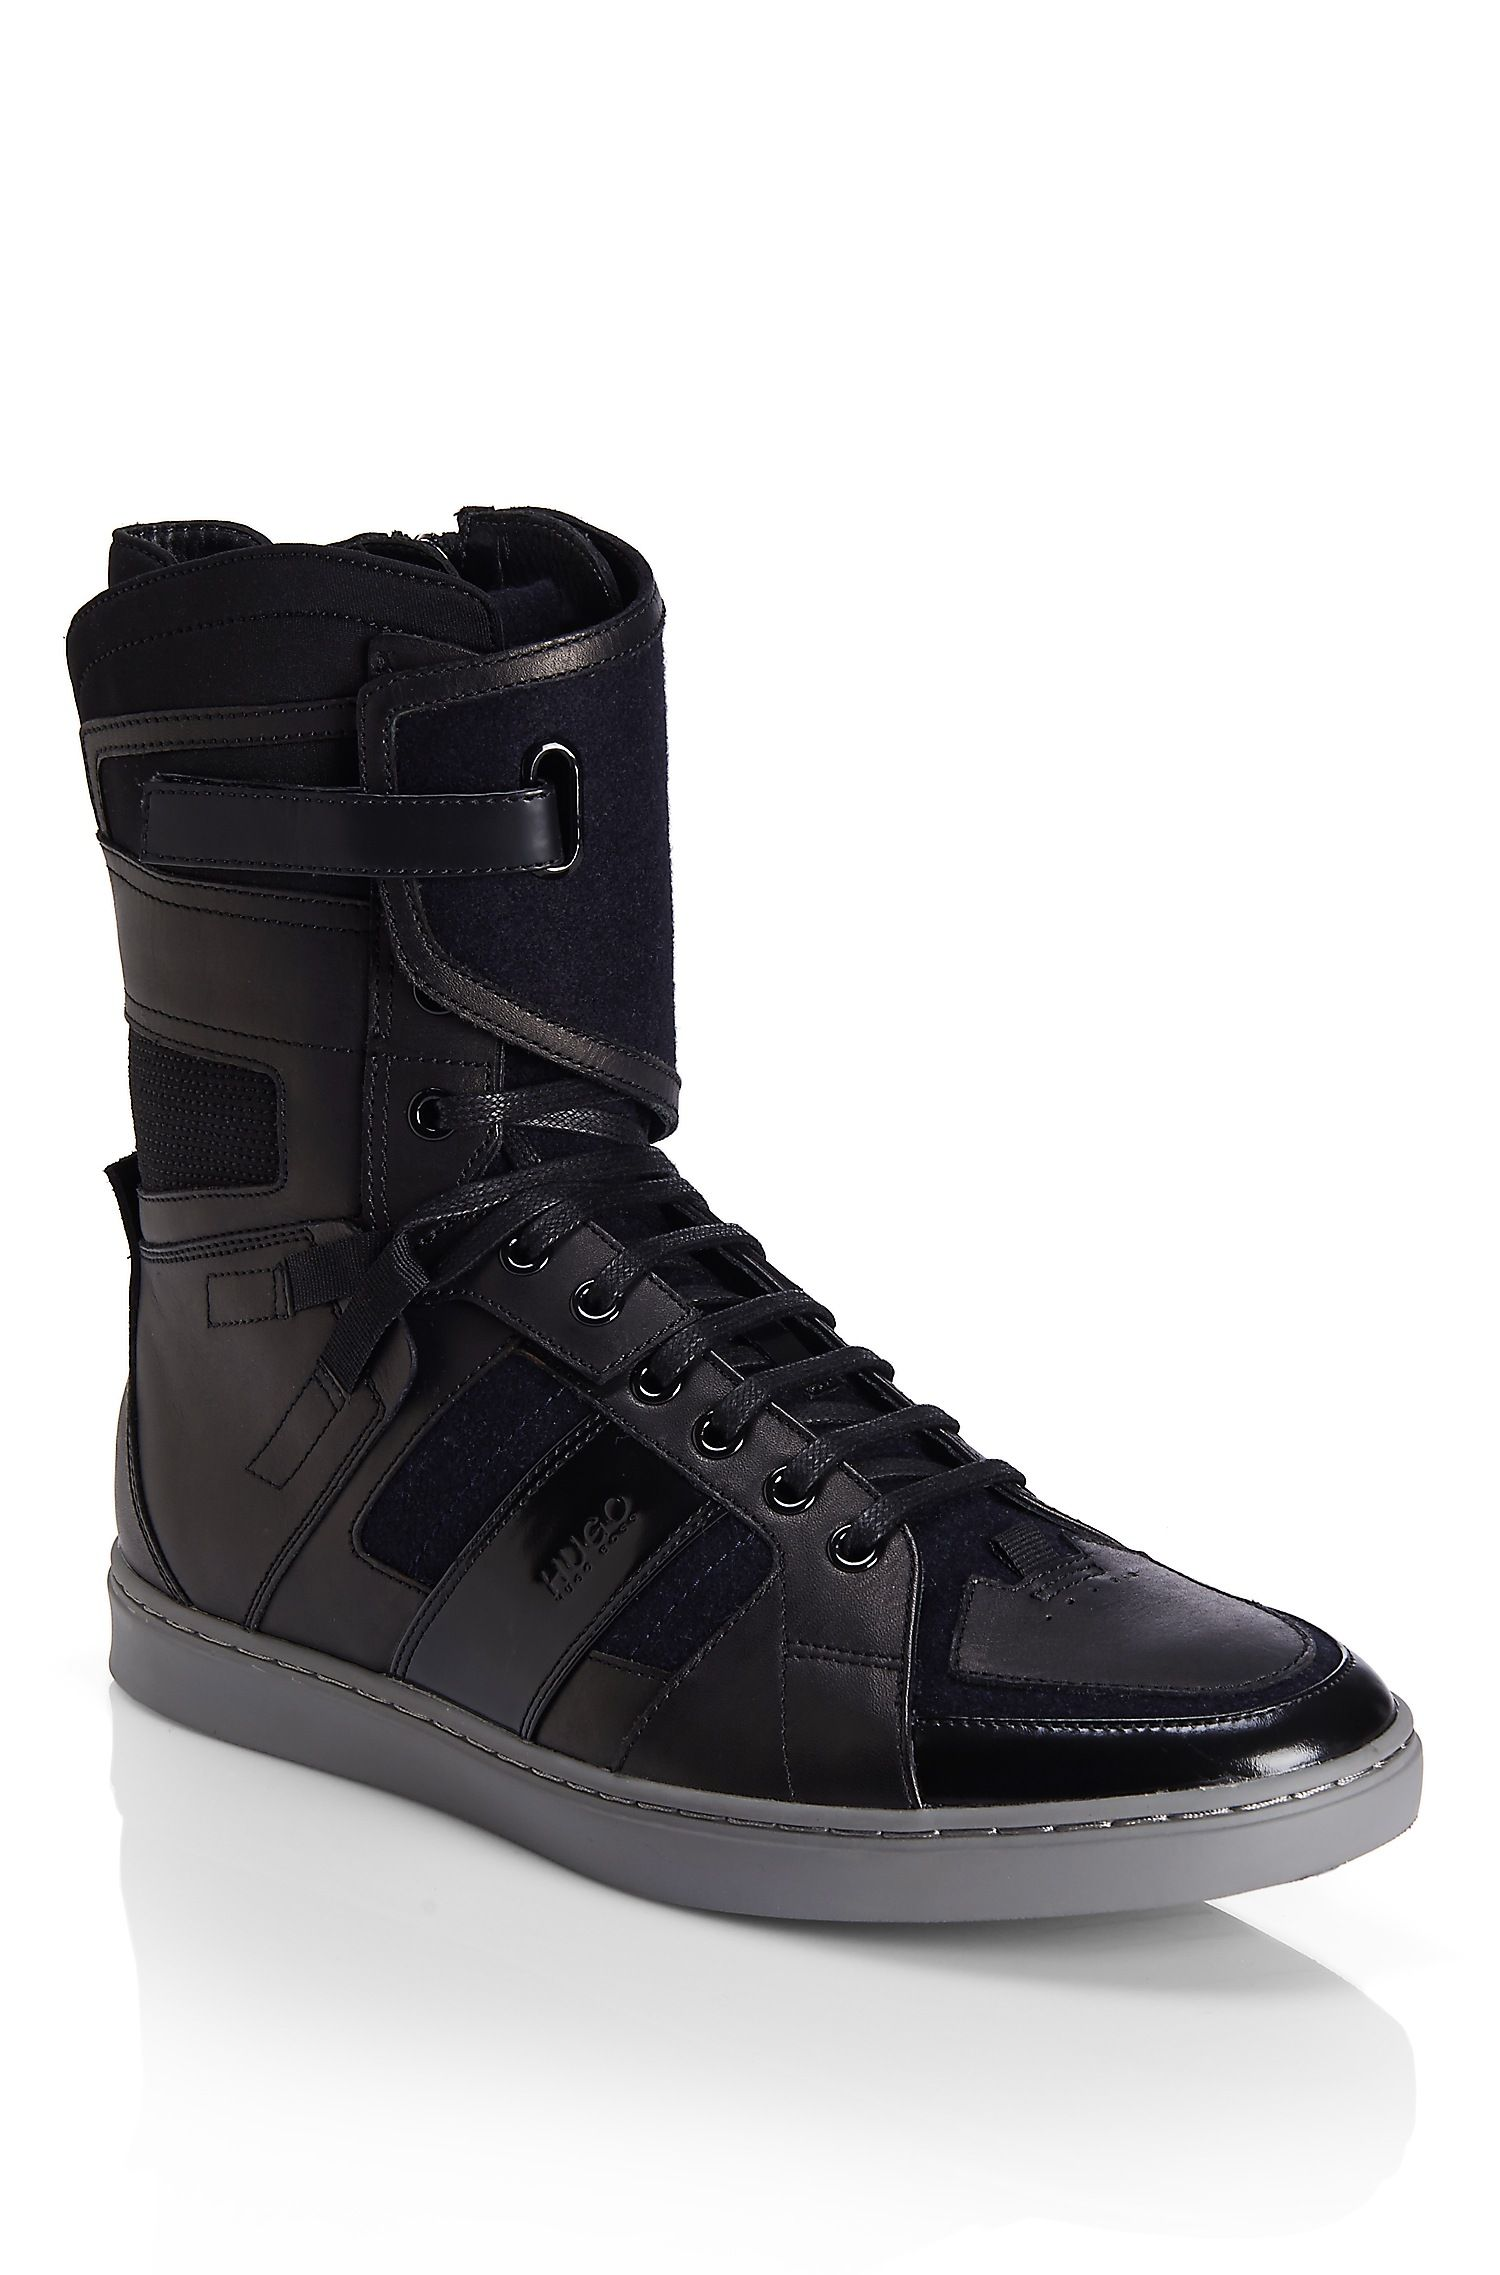 2e6c80fe91ca0a Raion'   Leather Blend Hightop Sneakers by HUGO   Happy feet ...